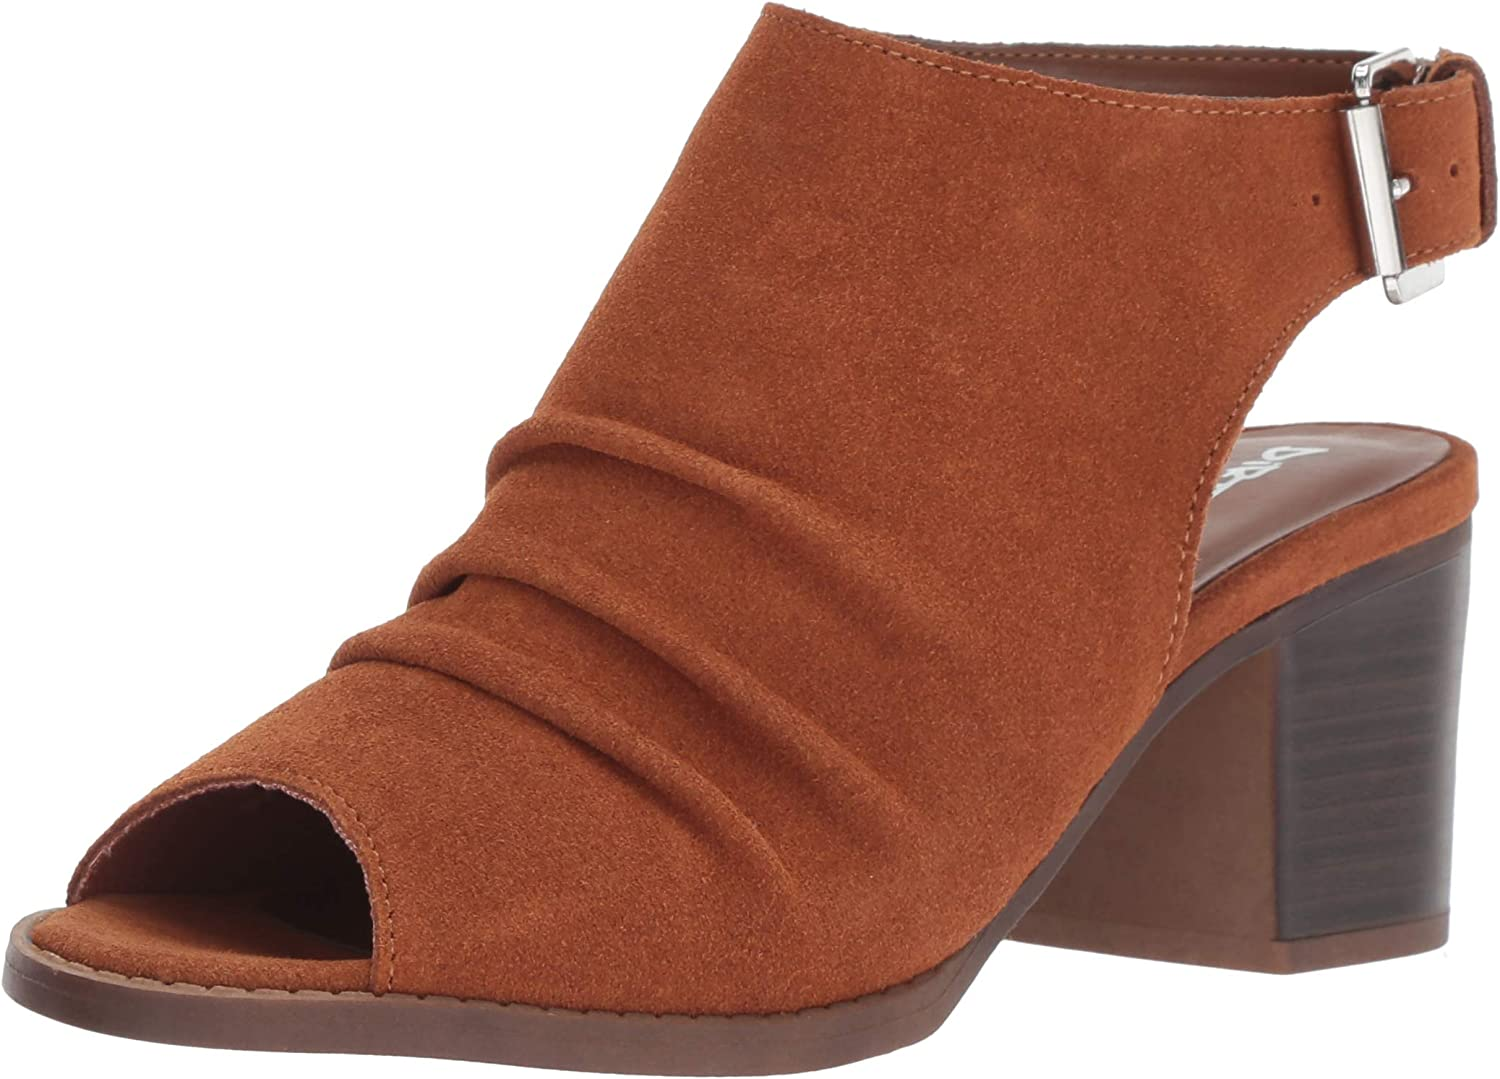 Dirty Laundry Women's Tena Ankle Boot